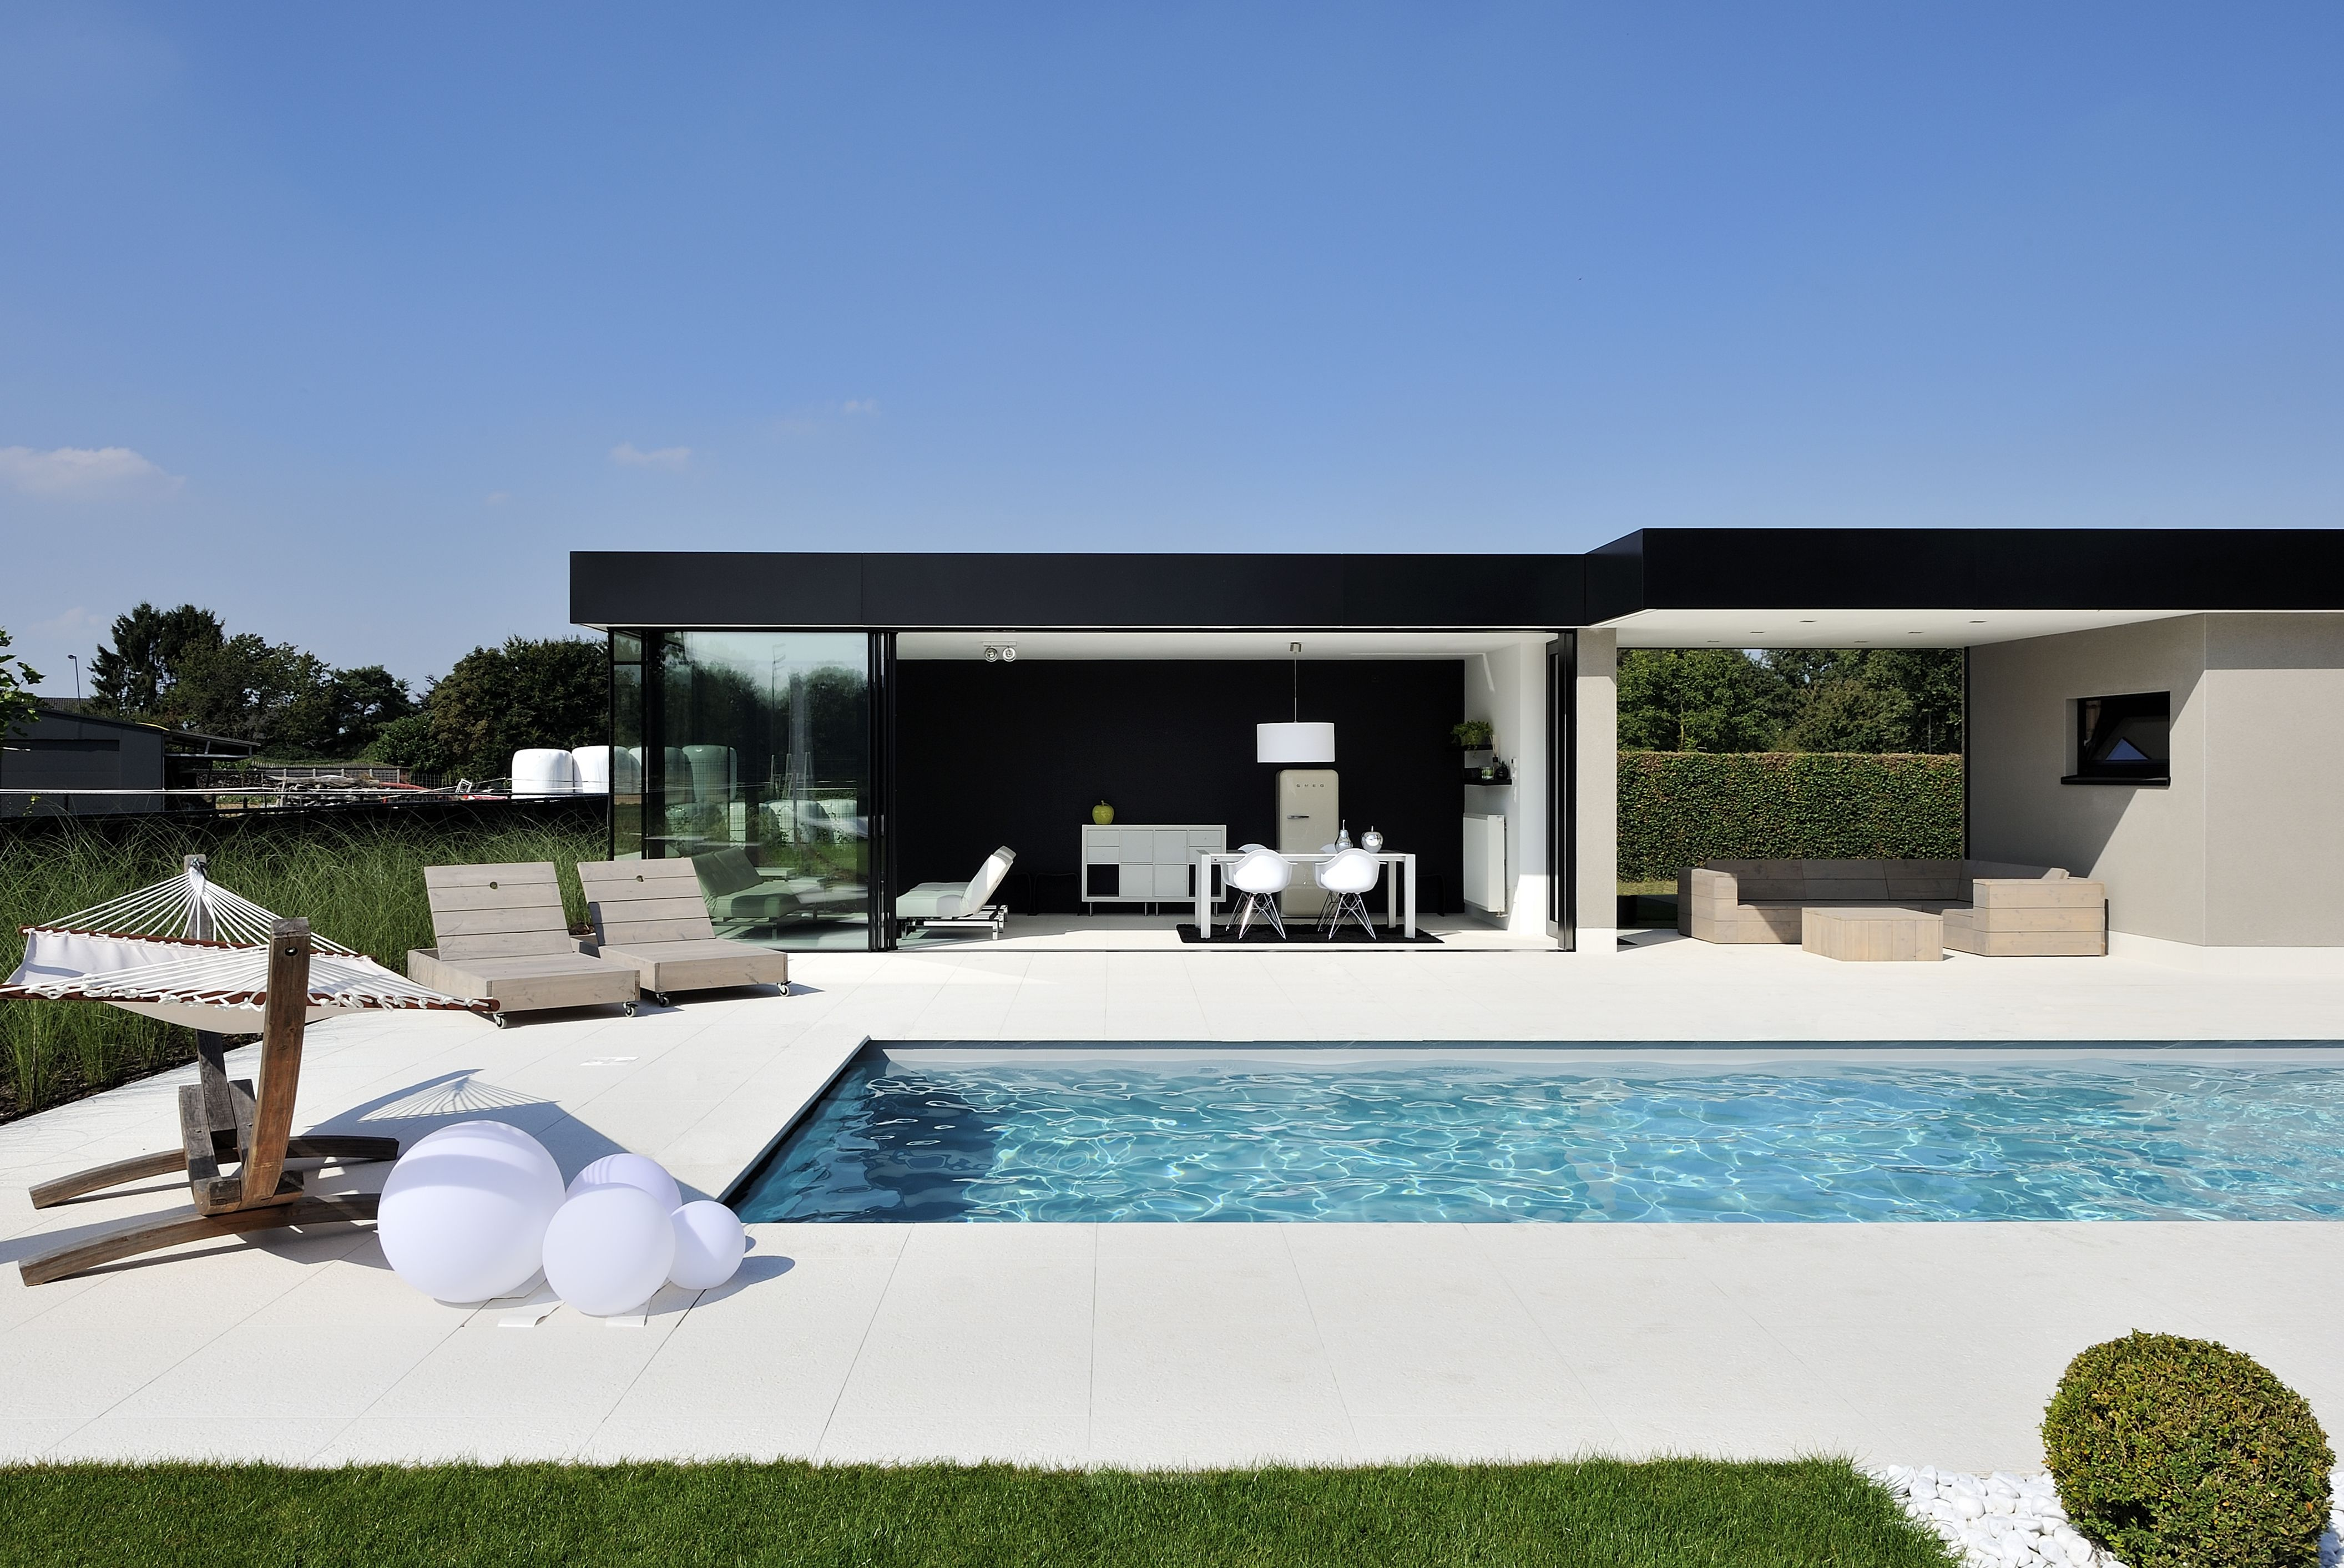 Sliding Minimal Windows To A Modern Pool Side Living Room The Flush Tracks Create